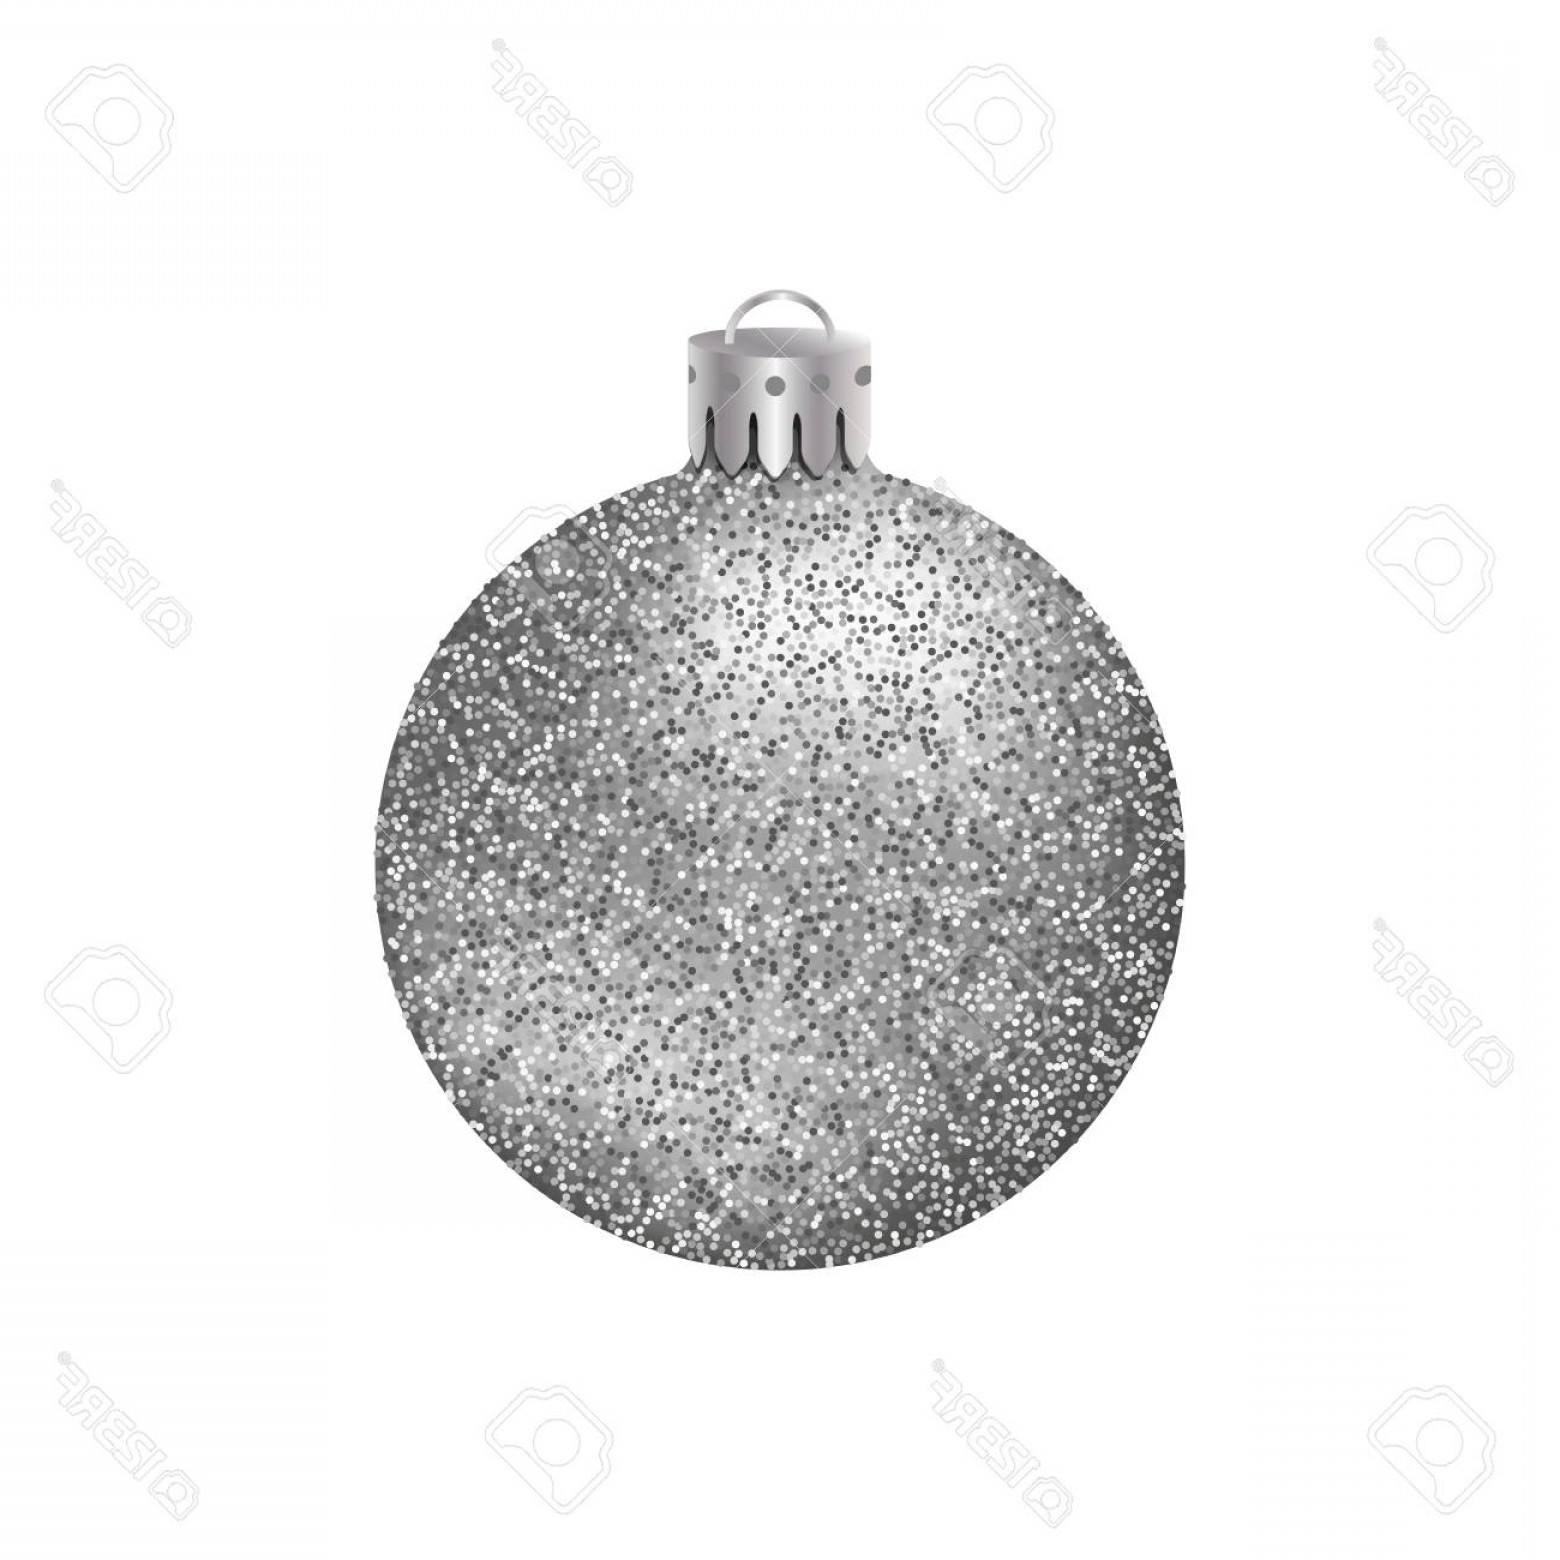 3 Glass Christmas Bulb Vector: Photostock Vector Realistic Silver Christmas Ball Or Bauble With Glitter Texture Isolated On White Background